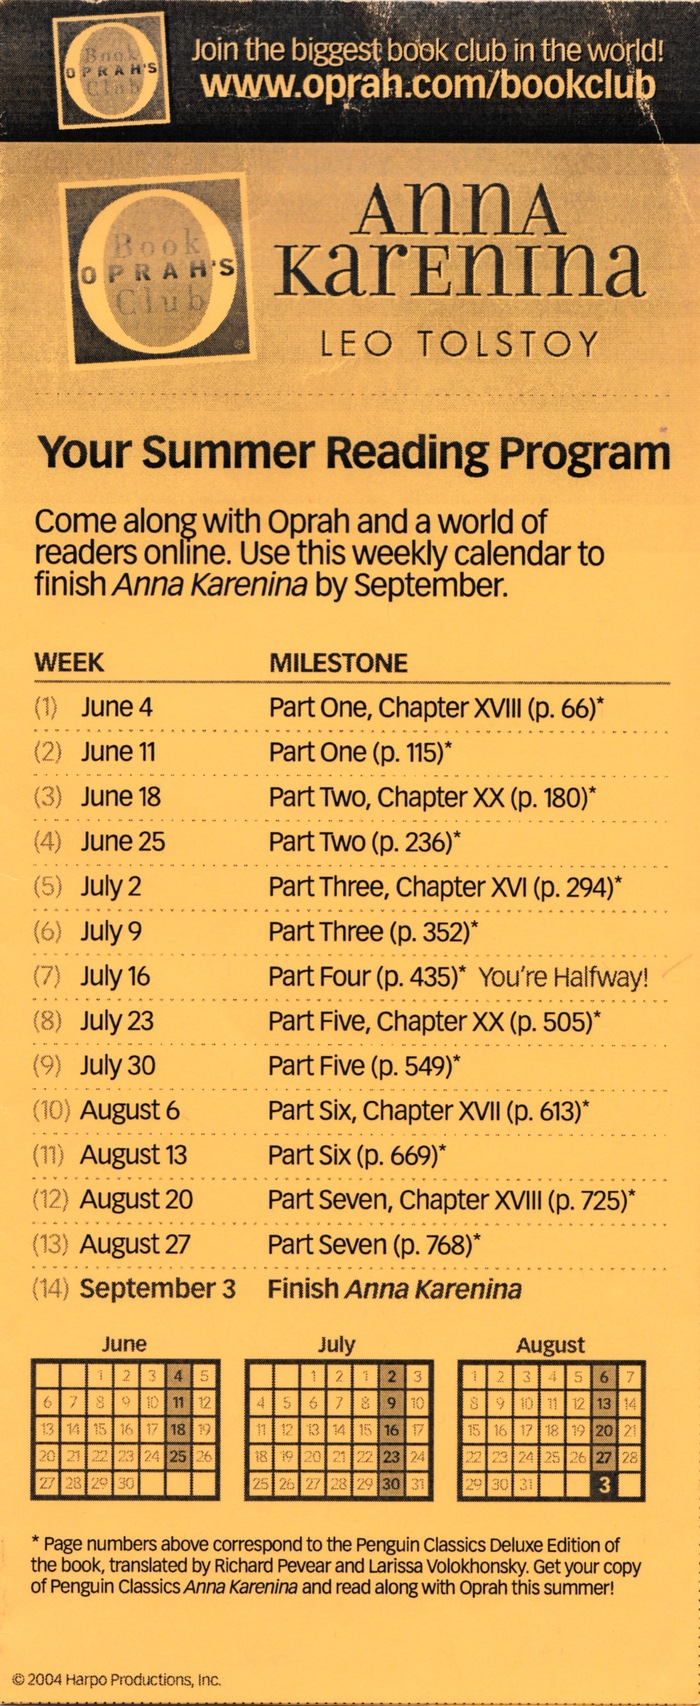 Oprah Winfrey selected this edition for her 2004 summer reading program. The online schedule for marching through the 817-page book featured Vectora, which was the primary display face in Oprah magazine at the time.